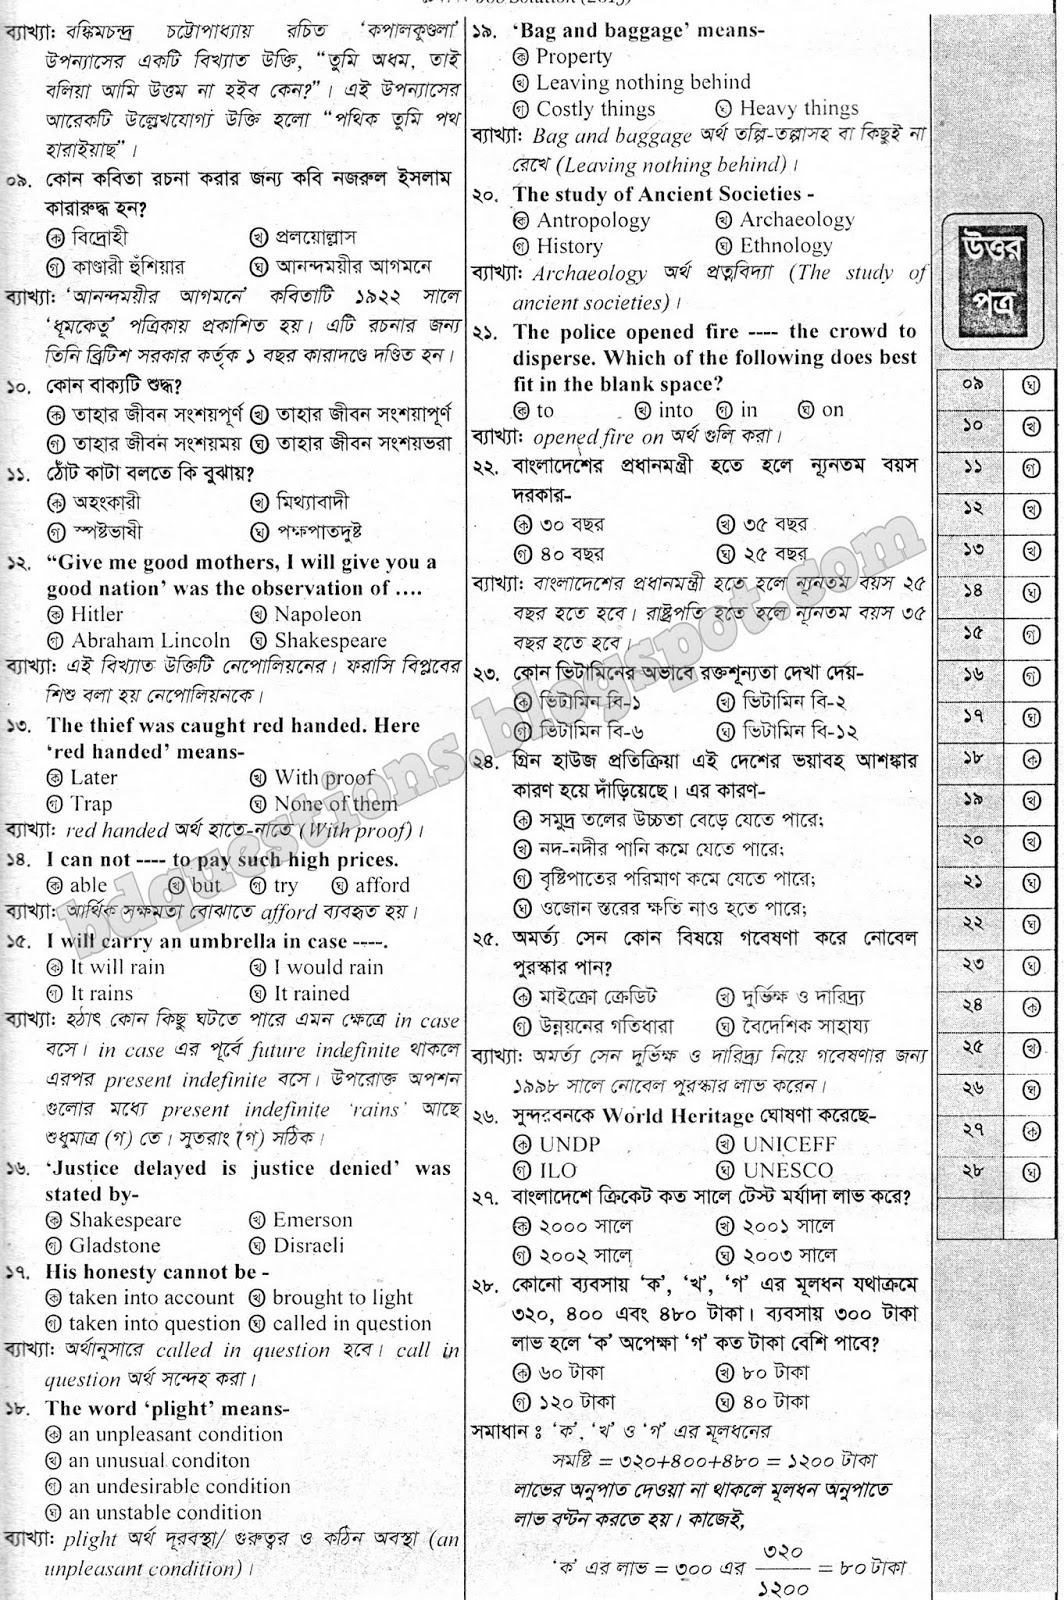 Palli Unnayan Board Recruitment test Question sample - BD